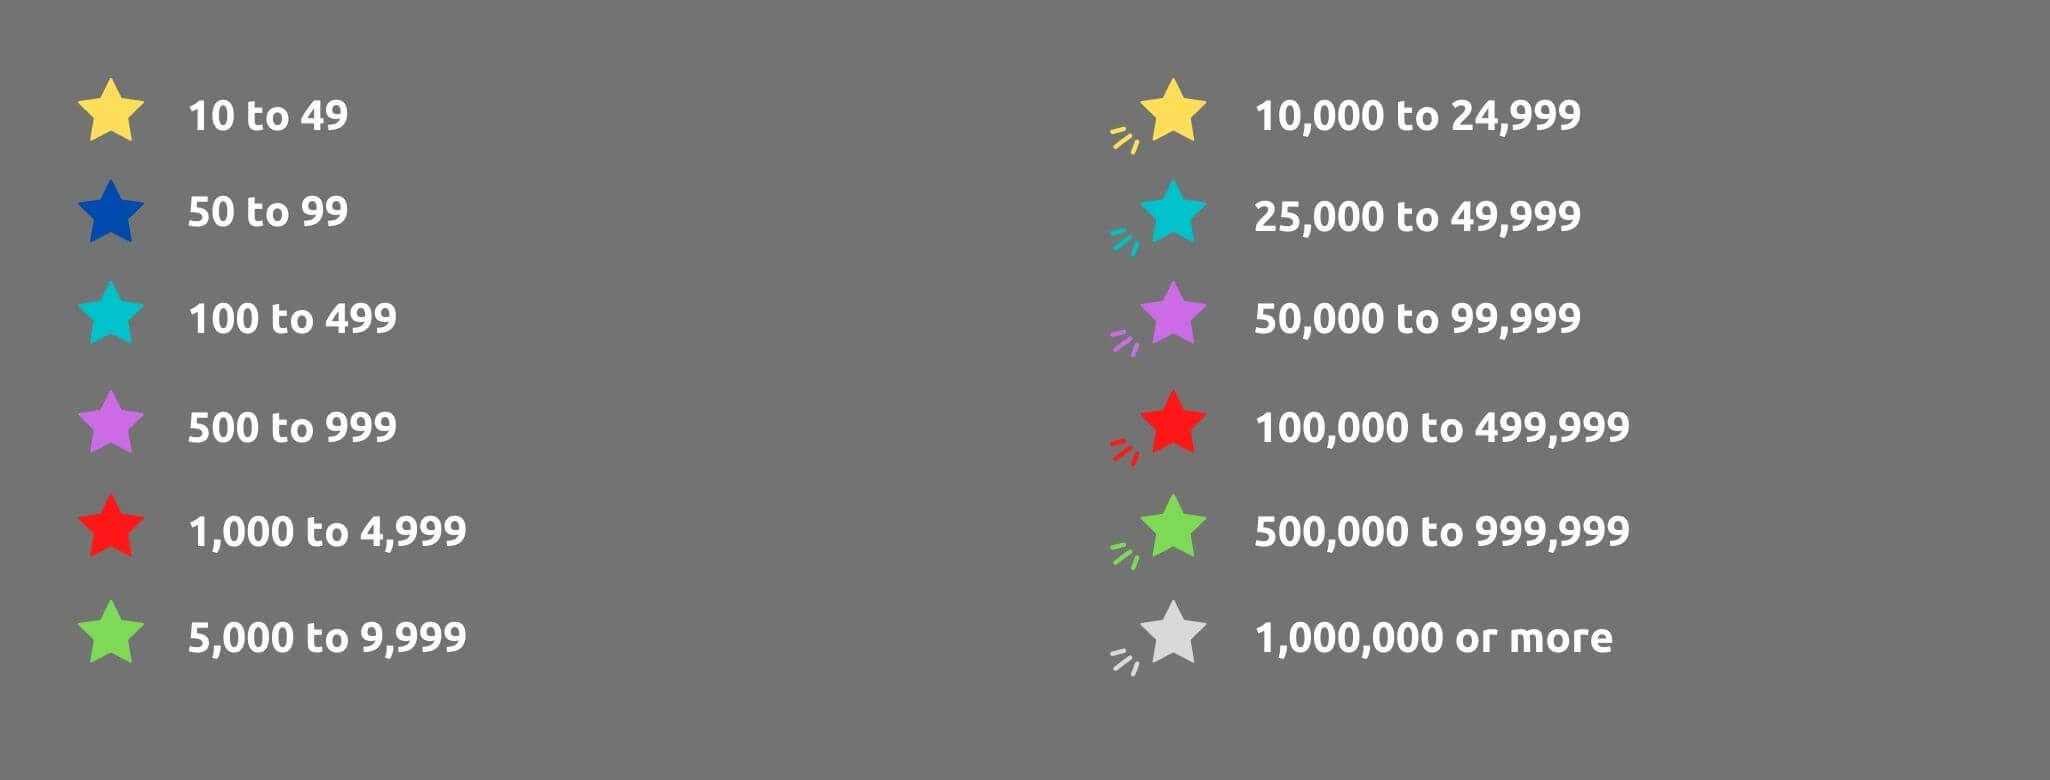 Star Colors Defined - What eBay Star Colors Mean + How to Improve Yours - Replyco Helpdesk Software for eCommerce